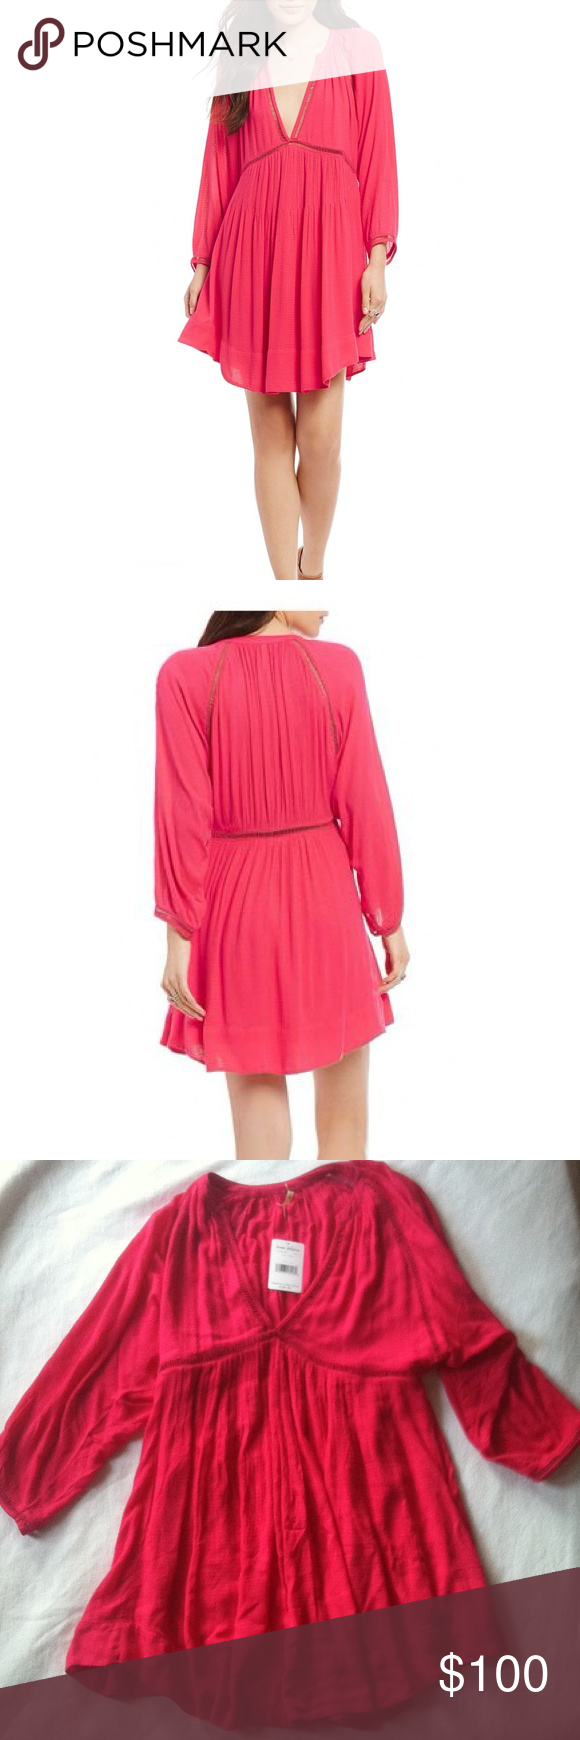 Nwt free people go lightly deep v solid mini dress this adorable